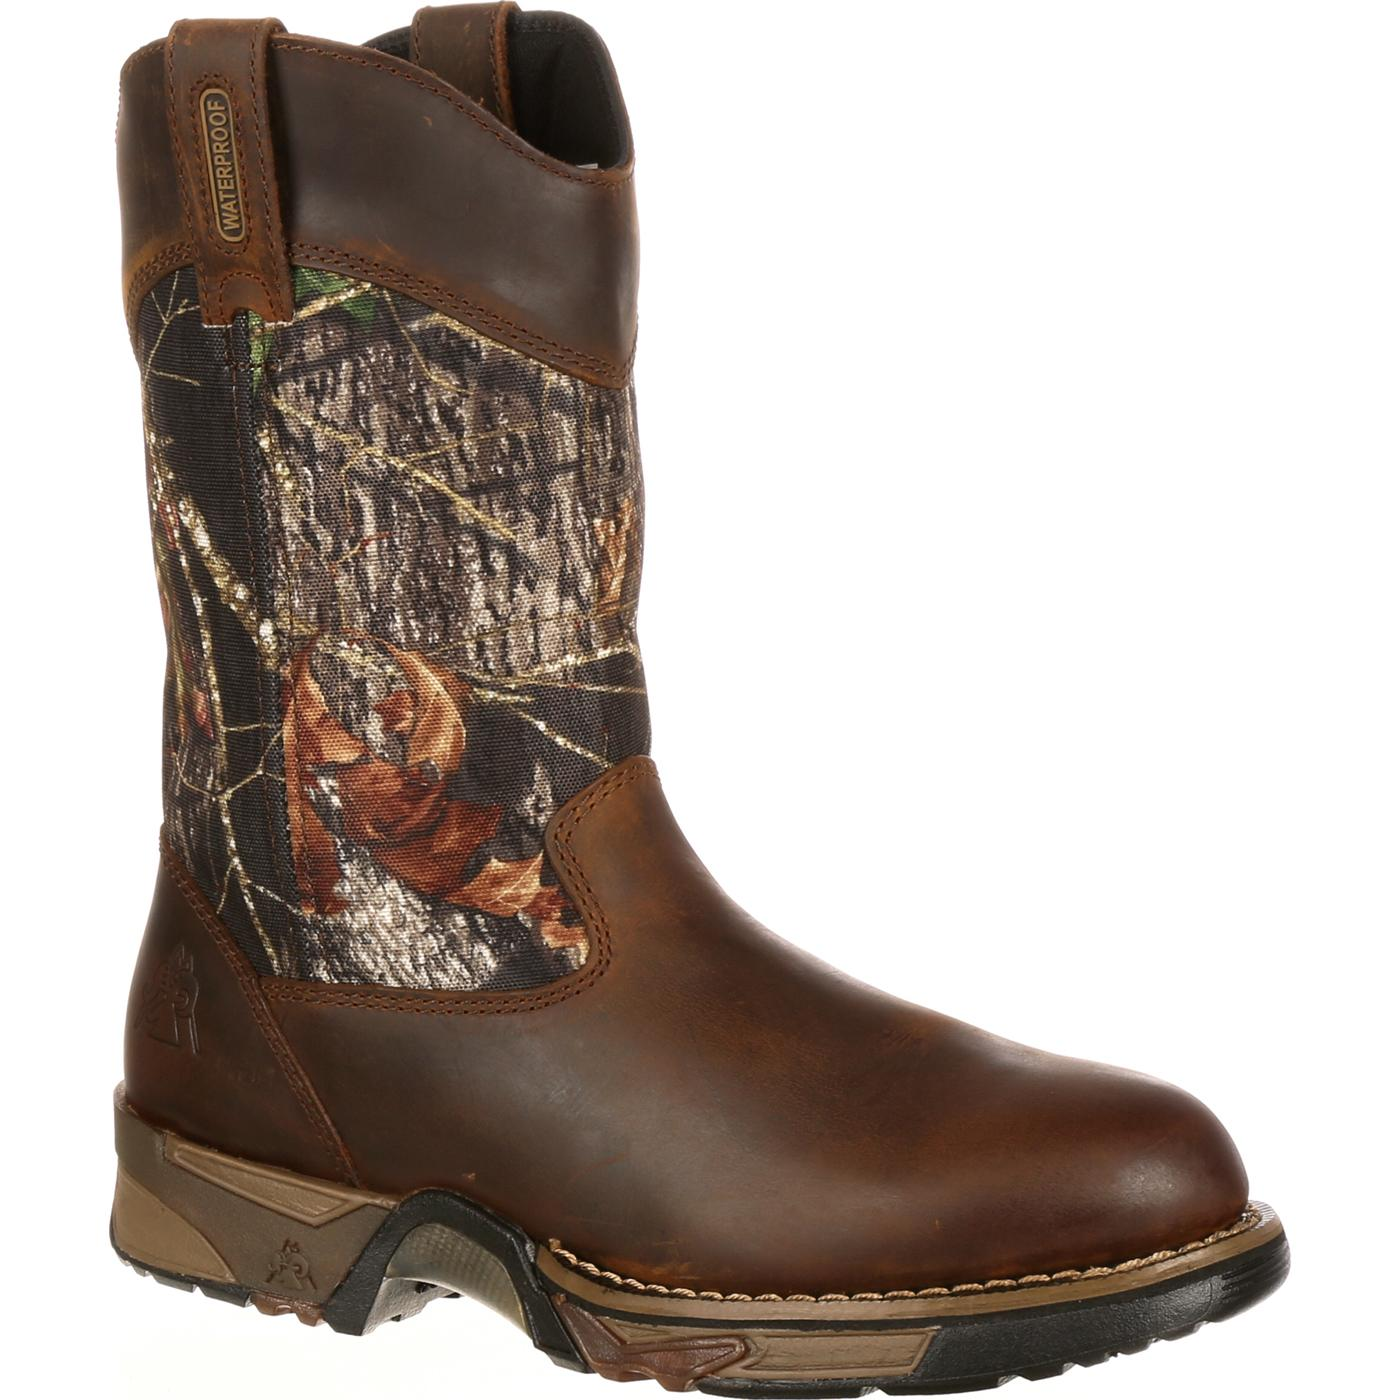 Rocky Aztec Waterproof MOBU Pull-On Boots - Style #2871